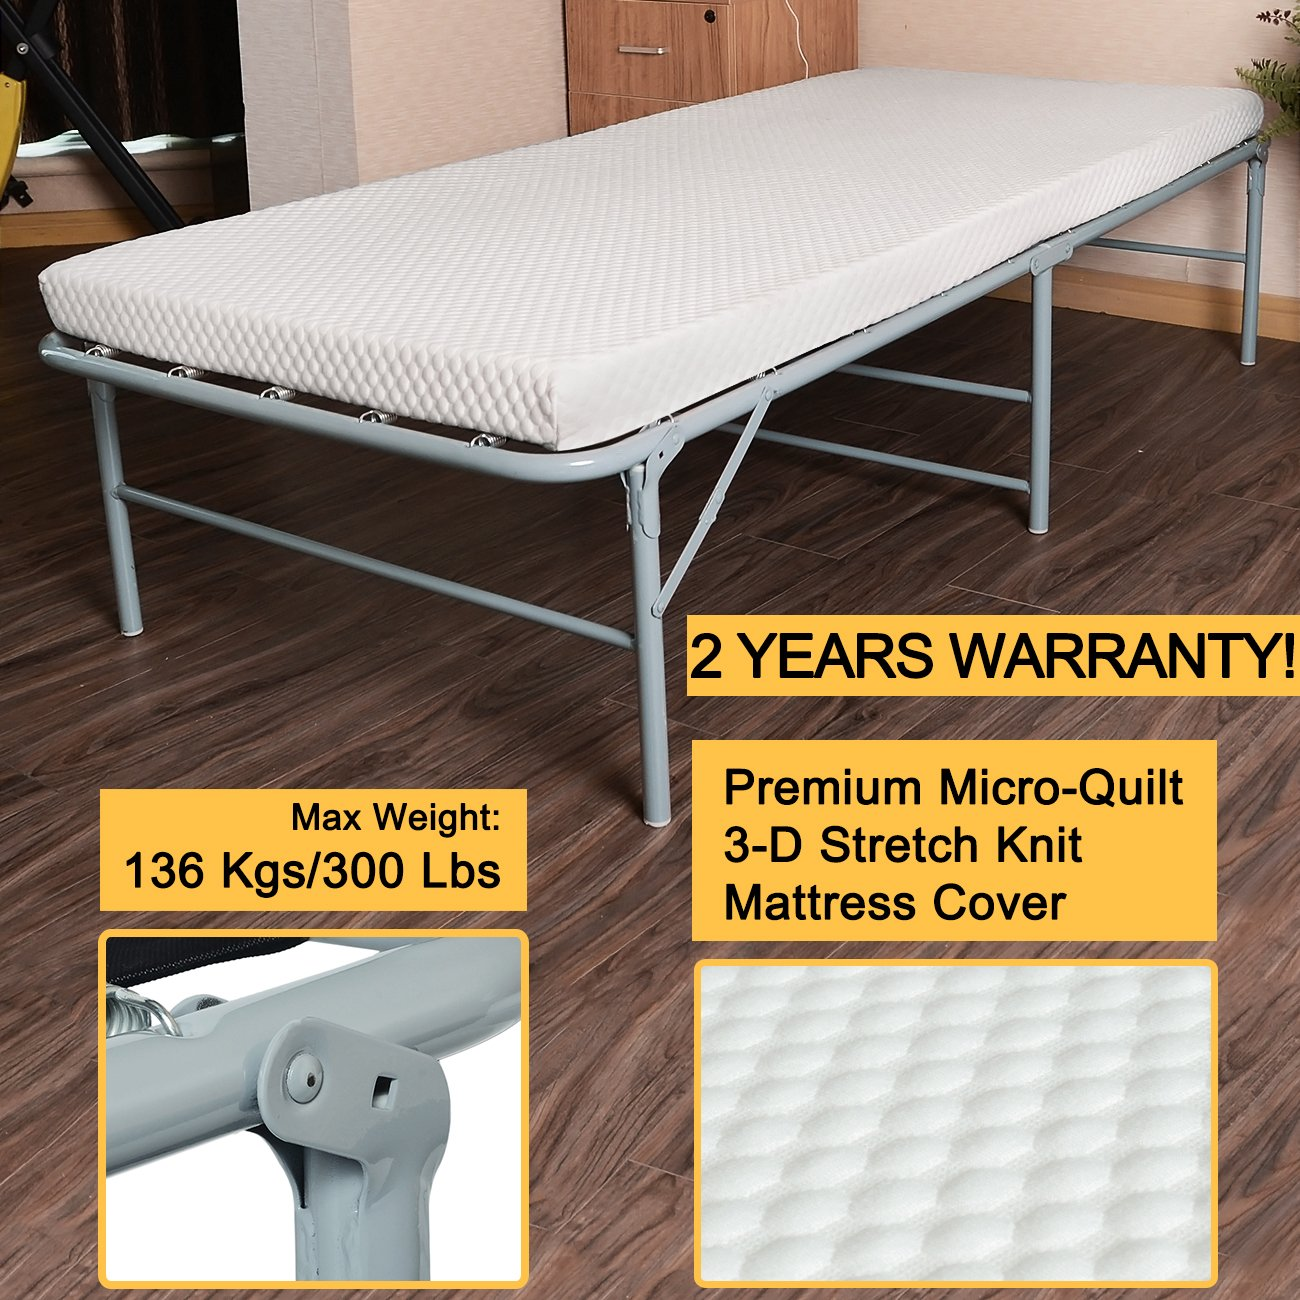 Quictent 300lbs Max Weight Capacity Heavy durable Galvanized Steel Frame folding bed for adult with Comfortable Soft Micro-Quilt 3D Stretch Knit Mattress Cover and Bonus Storage Bag-75''x31''